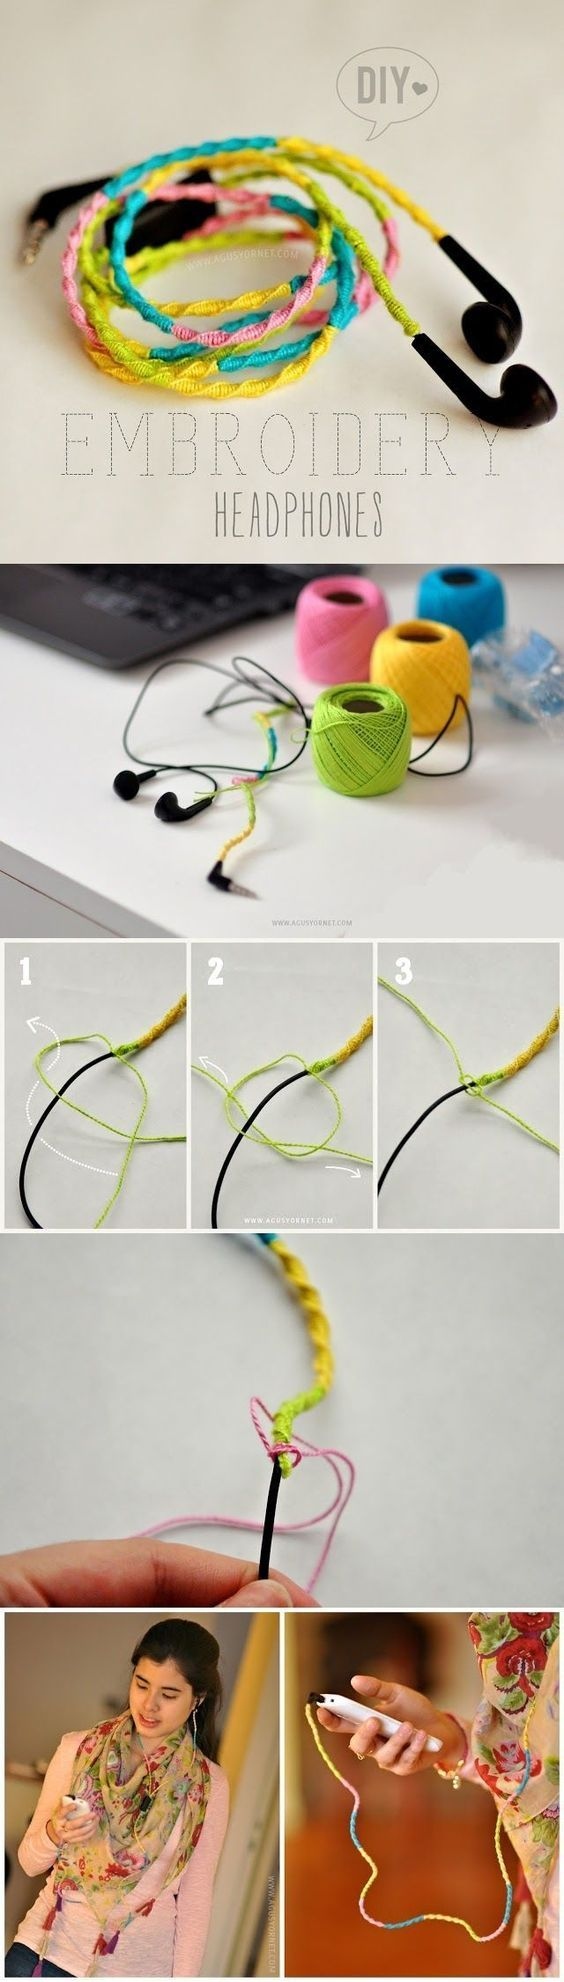 "Teen Crafts Ideas and DIY Projects for Teens and Tweens – DIY Embroidery Headphones fun project for teens Hey, girls! There are 10 DIY projects for you to get your hands busy for the season. You can use them to spice up your fall wardrobe, to enchance your accessory collection or to make something more … Continue reading ""10 DIY Projects for Girls"""